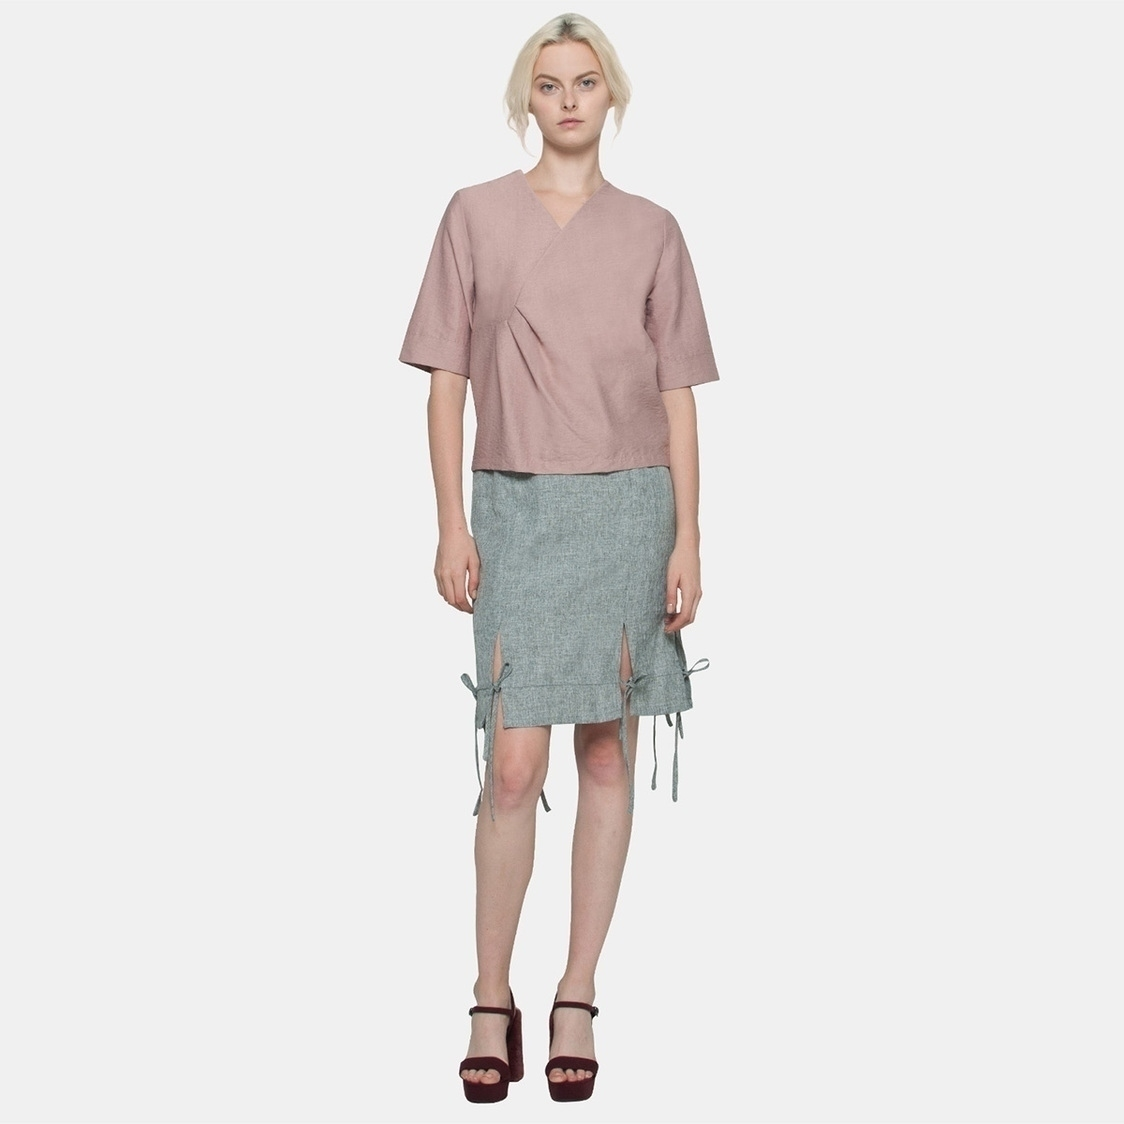 Waist Tuck Textured Shirt in Pink